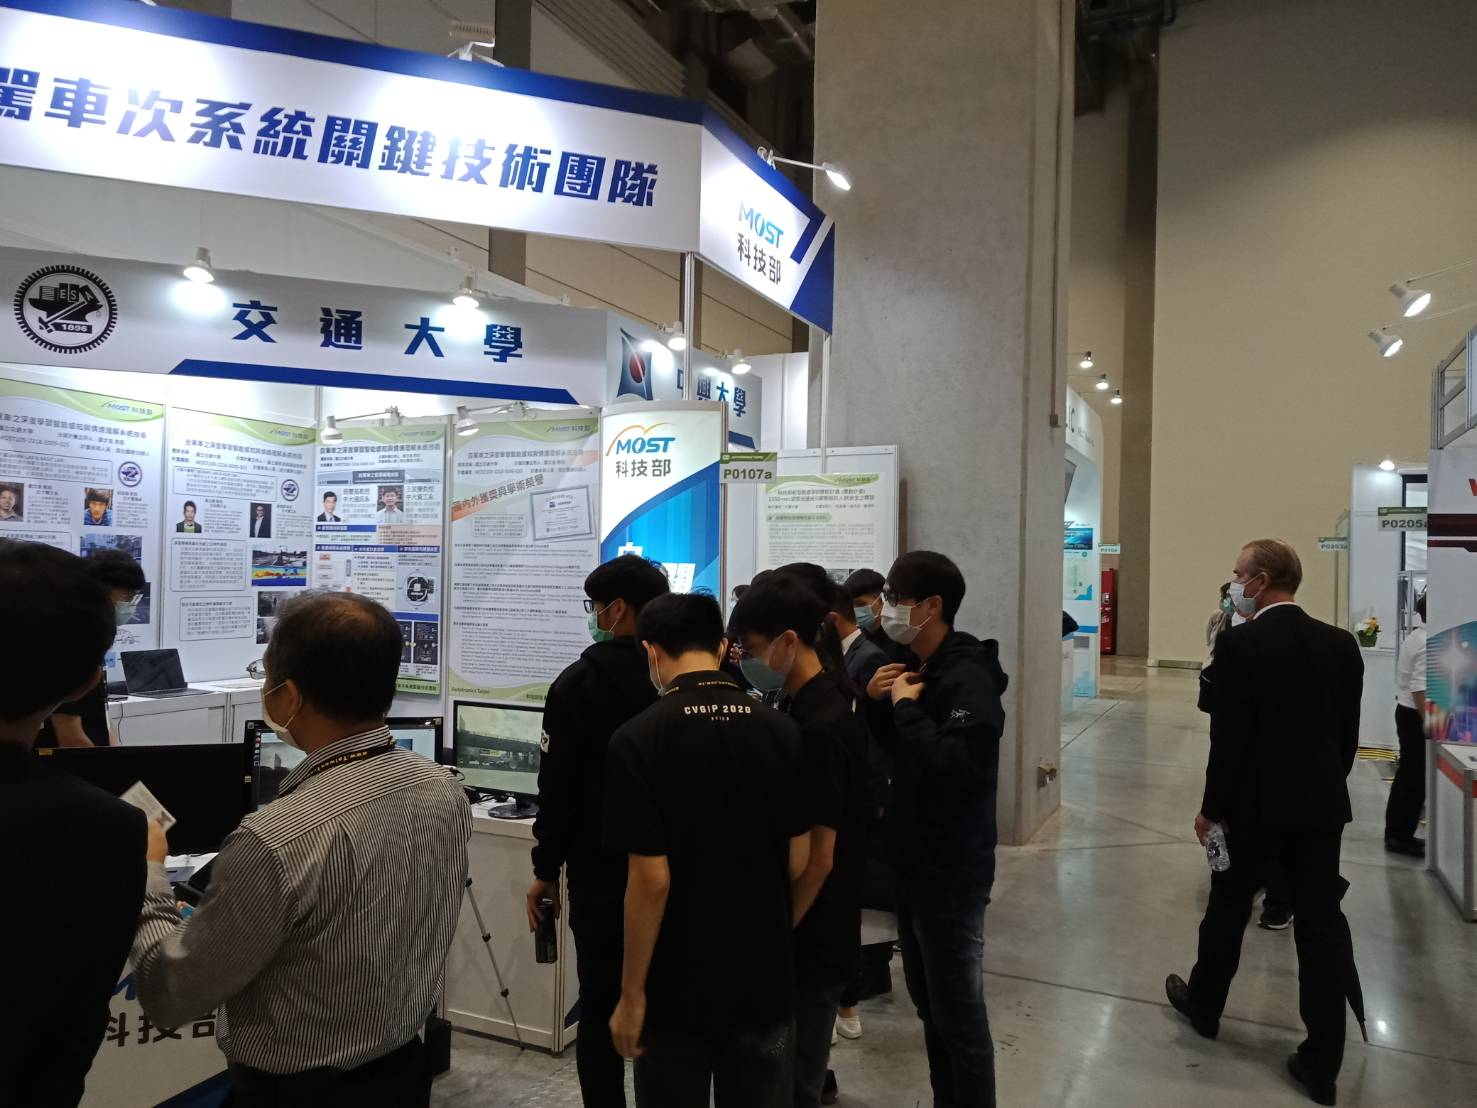 https://storage.googleapis.com/www.taiwantradeshow.com.tw/activity-photo/202010/T-71083891-name.jpg